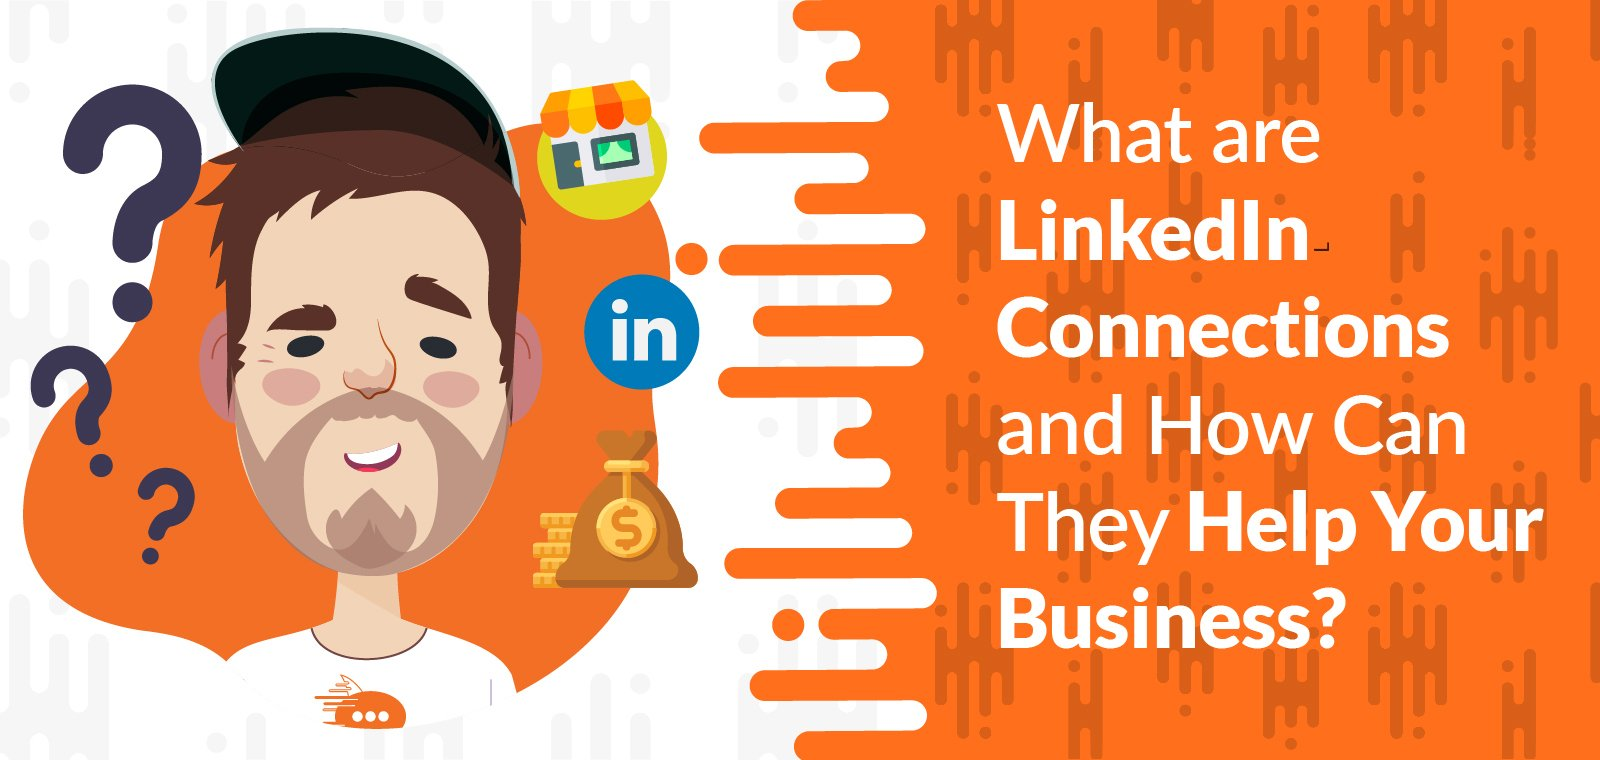 What are LinkedIn Connections and How Can They Help Your Business?